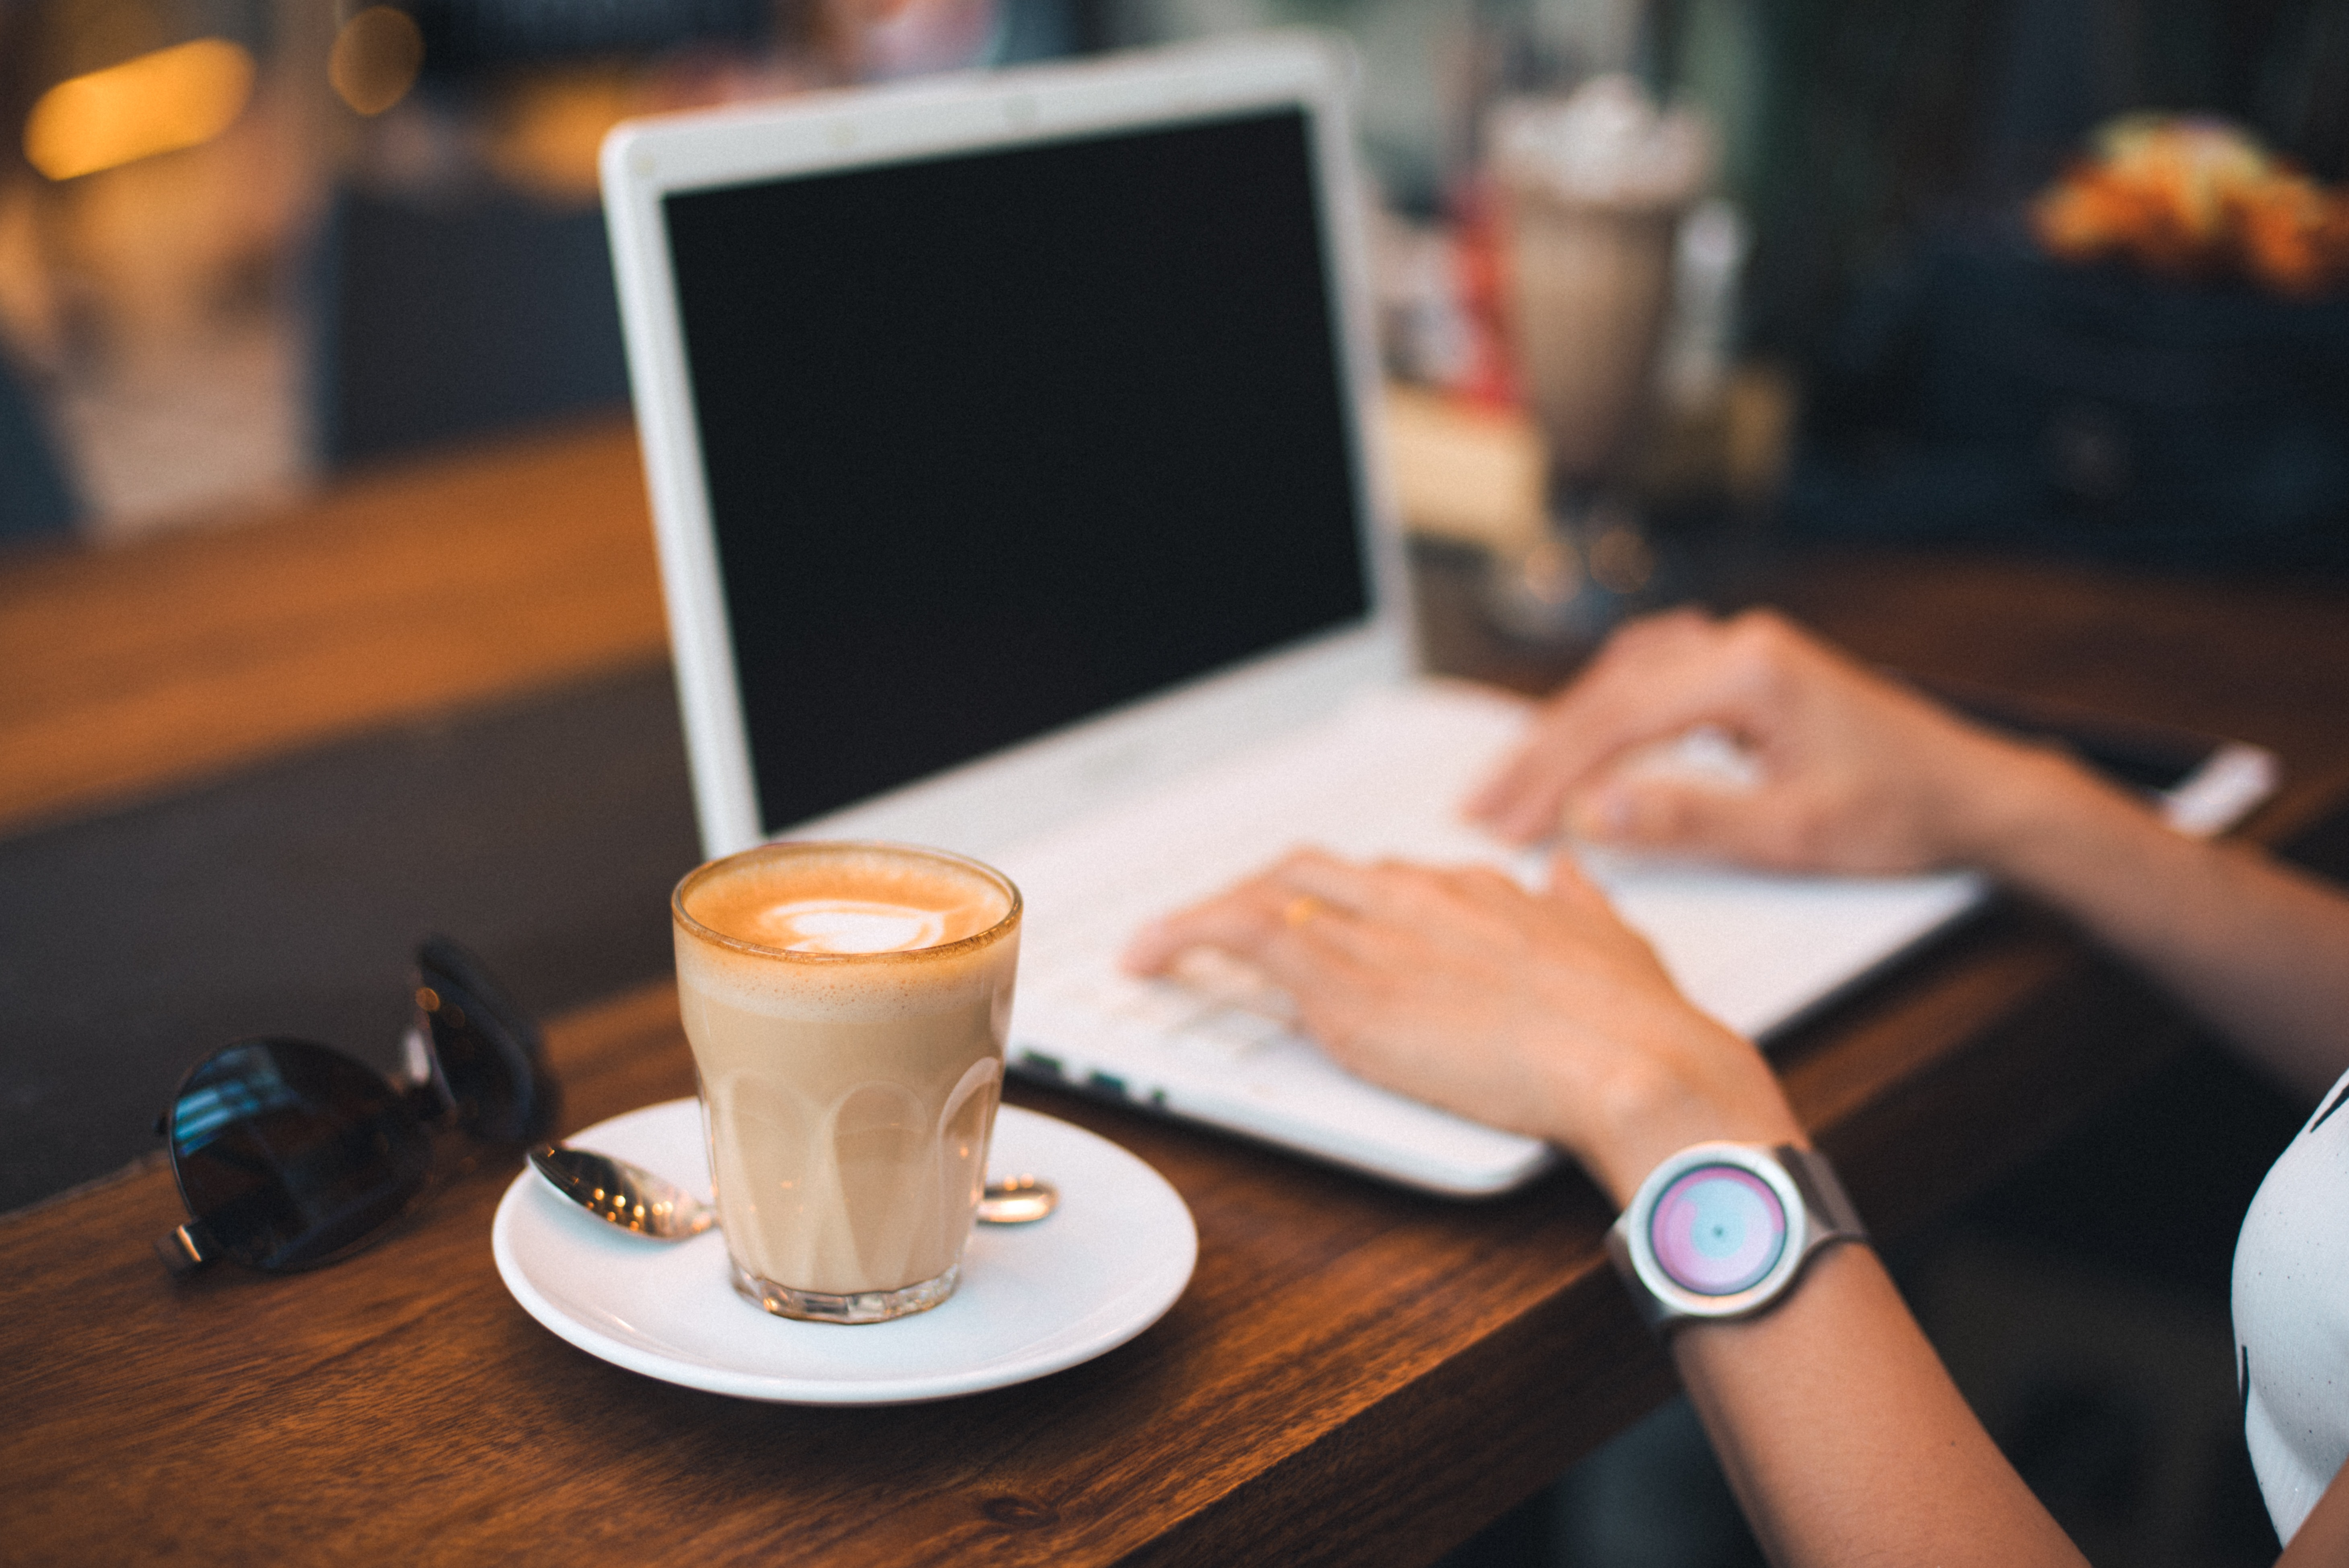 Midsection of Man Using Mobile Phone While Sitting on Table, Coffee, Computer, Cup, Desk, HQ Photo